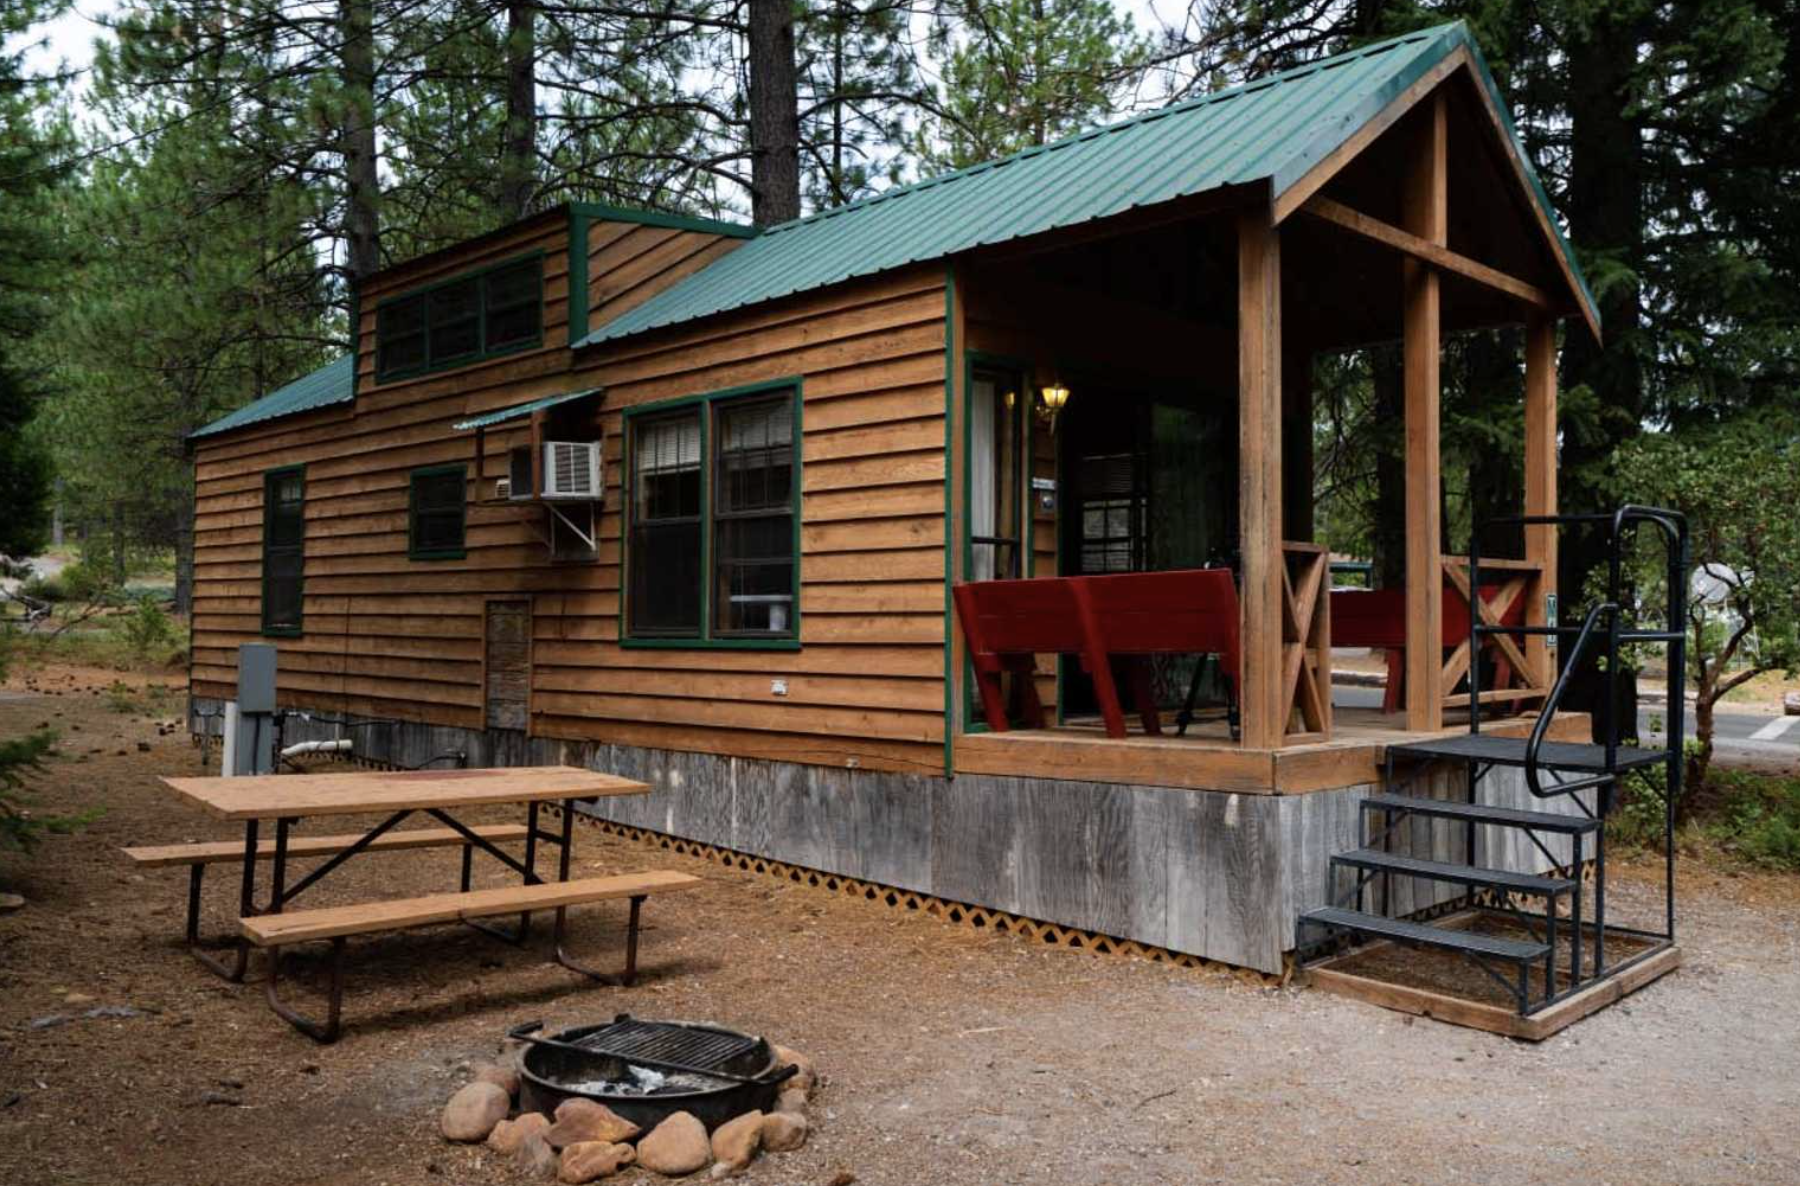 Cabin with picnic table and fire pit at campground